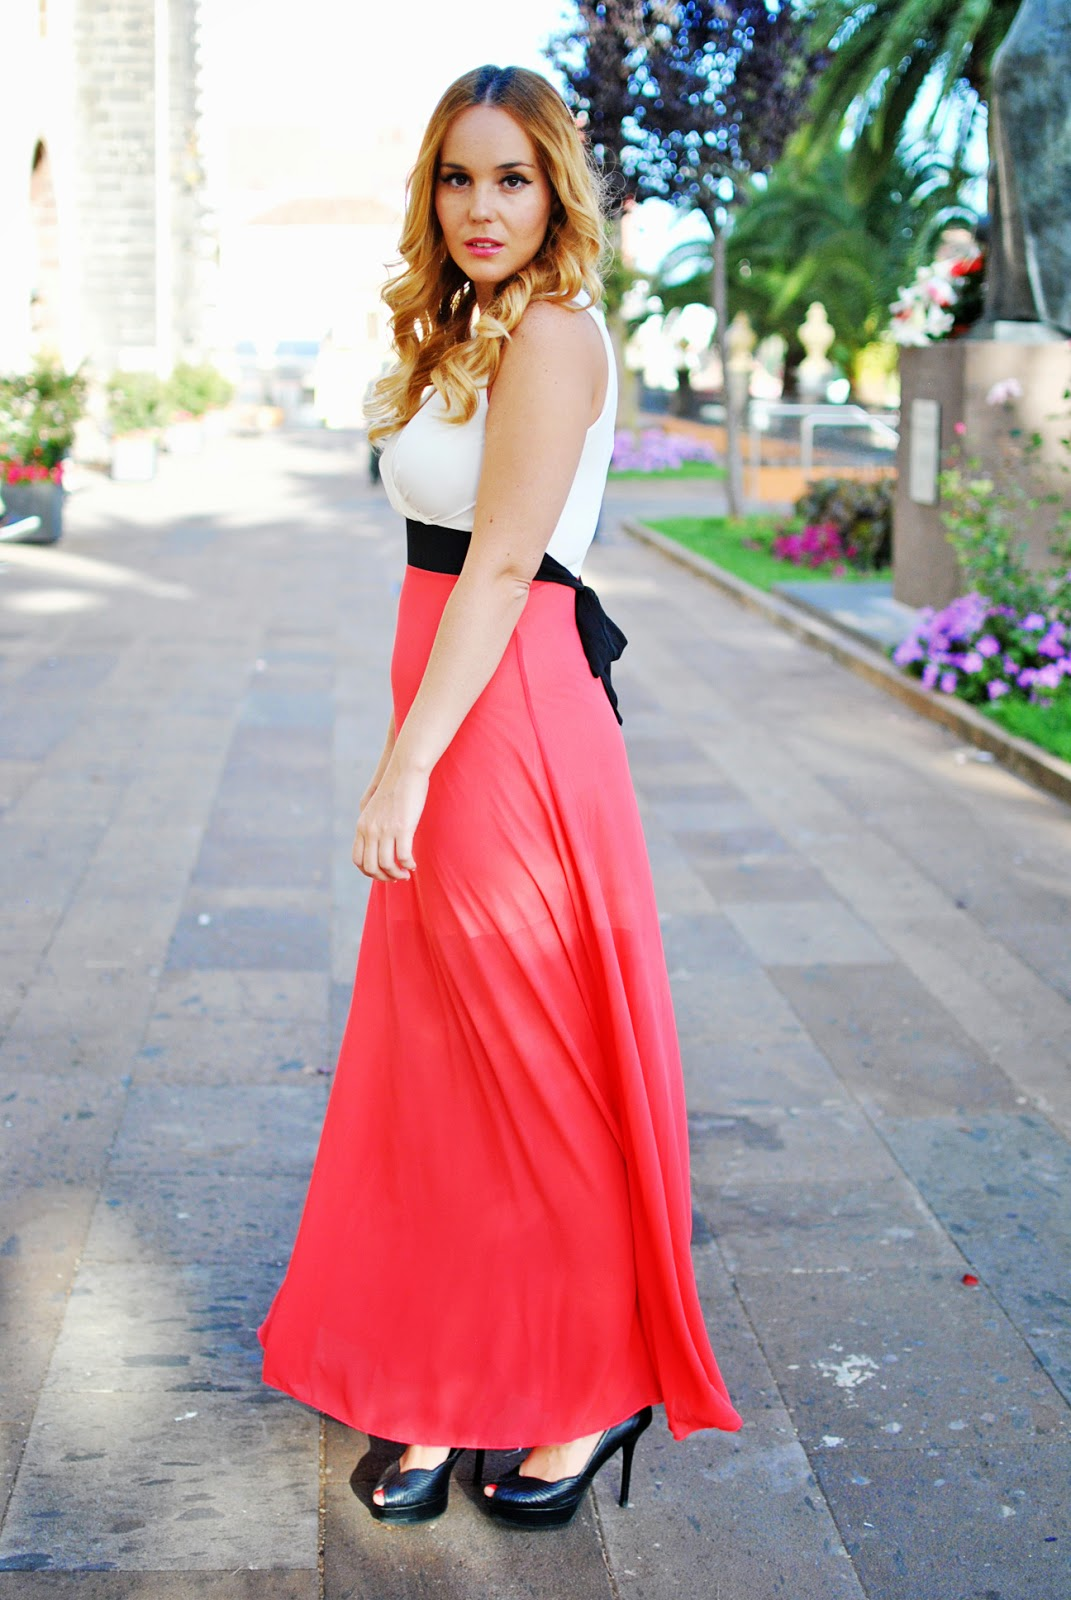 nery hdez, jollychic, walg london, ombre hair, mechas californianas, long dress, vestido largo